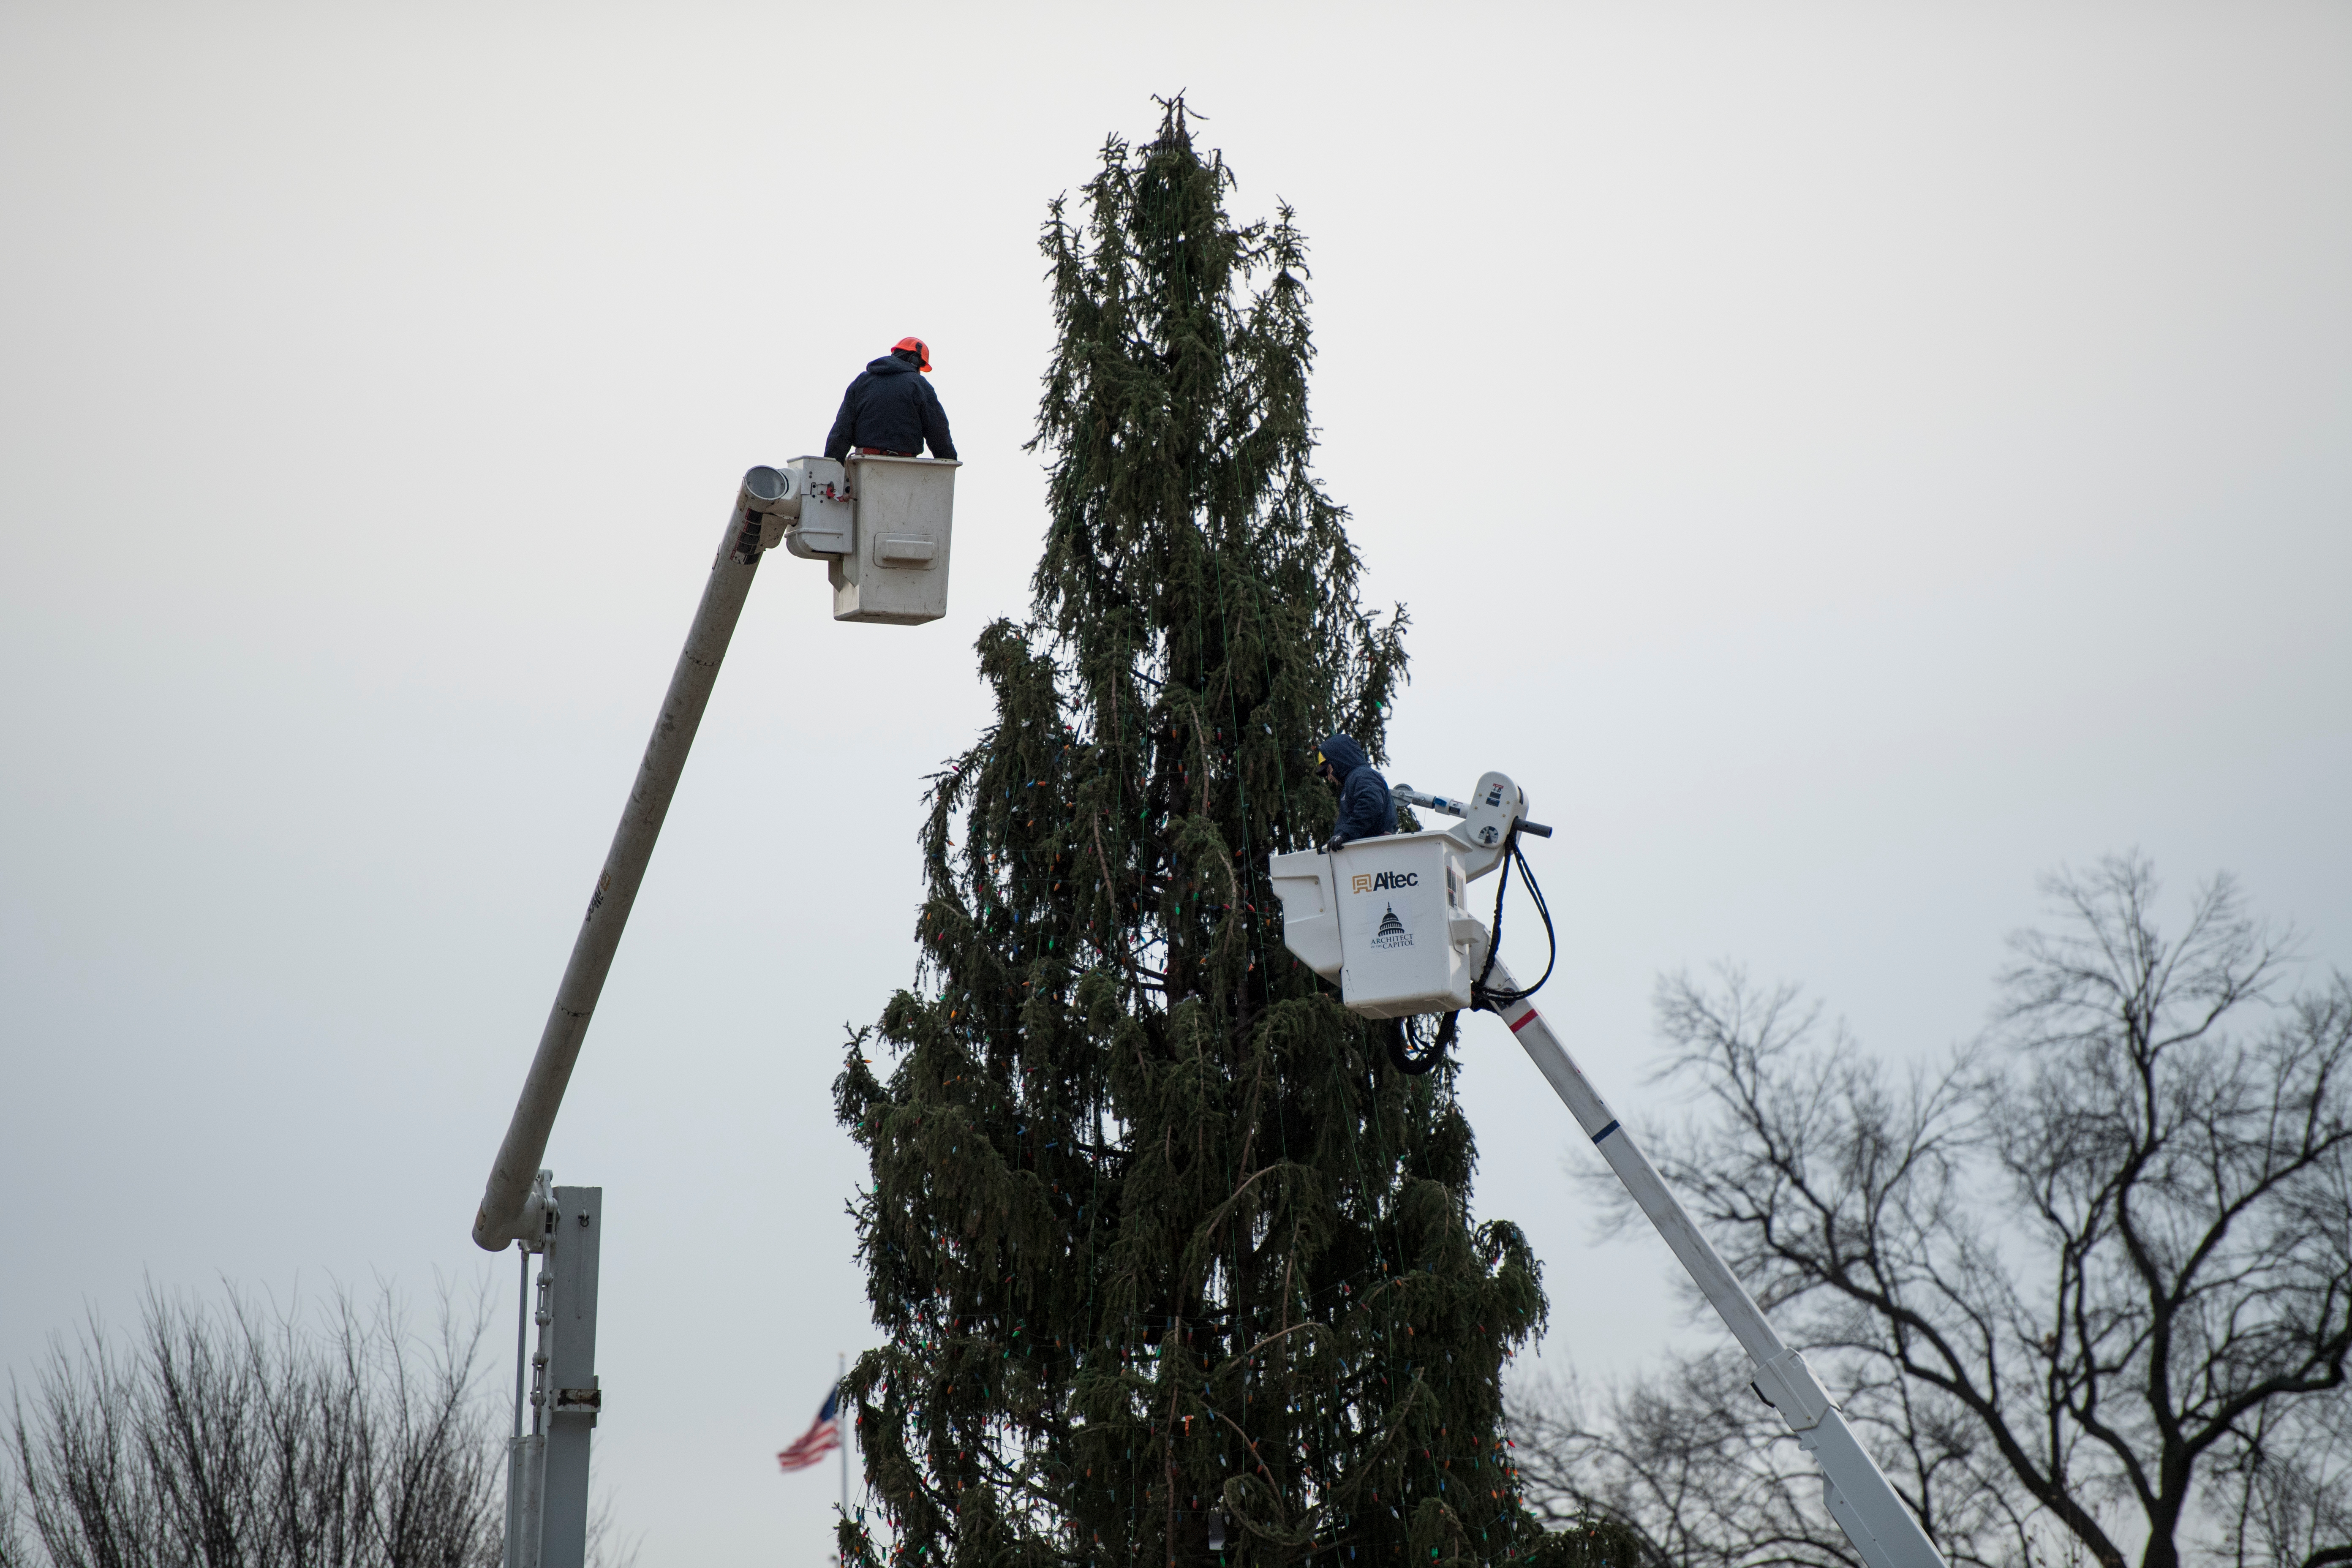 An Architect of the Capitol crew dismantles the Capitol Christmas Tree on the west side of the U.S. Capitol on Thursday. (Bill Clark/CQ Roll Call)